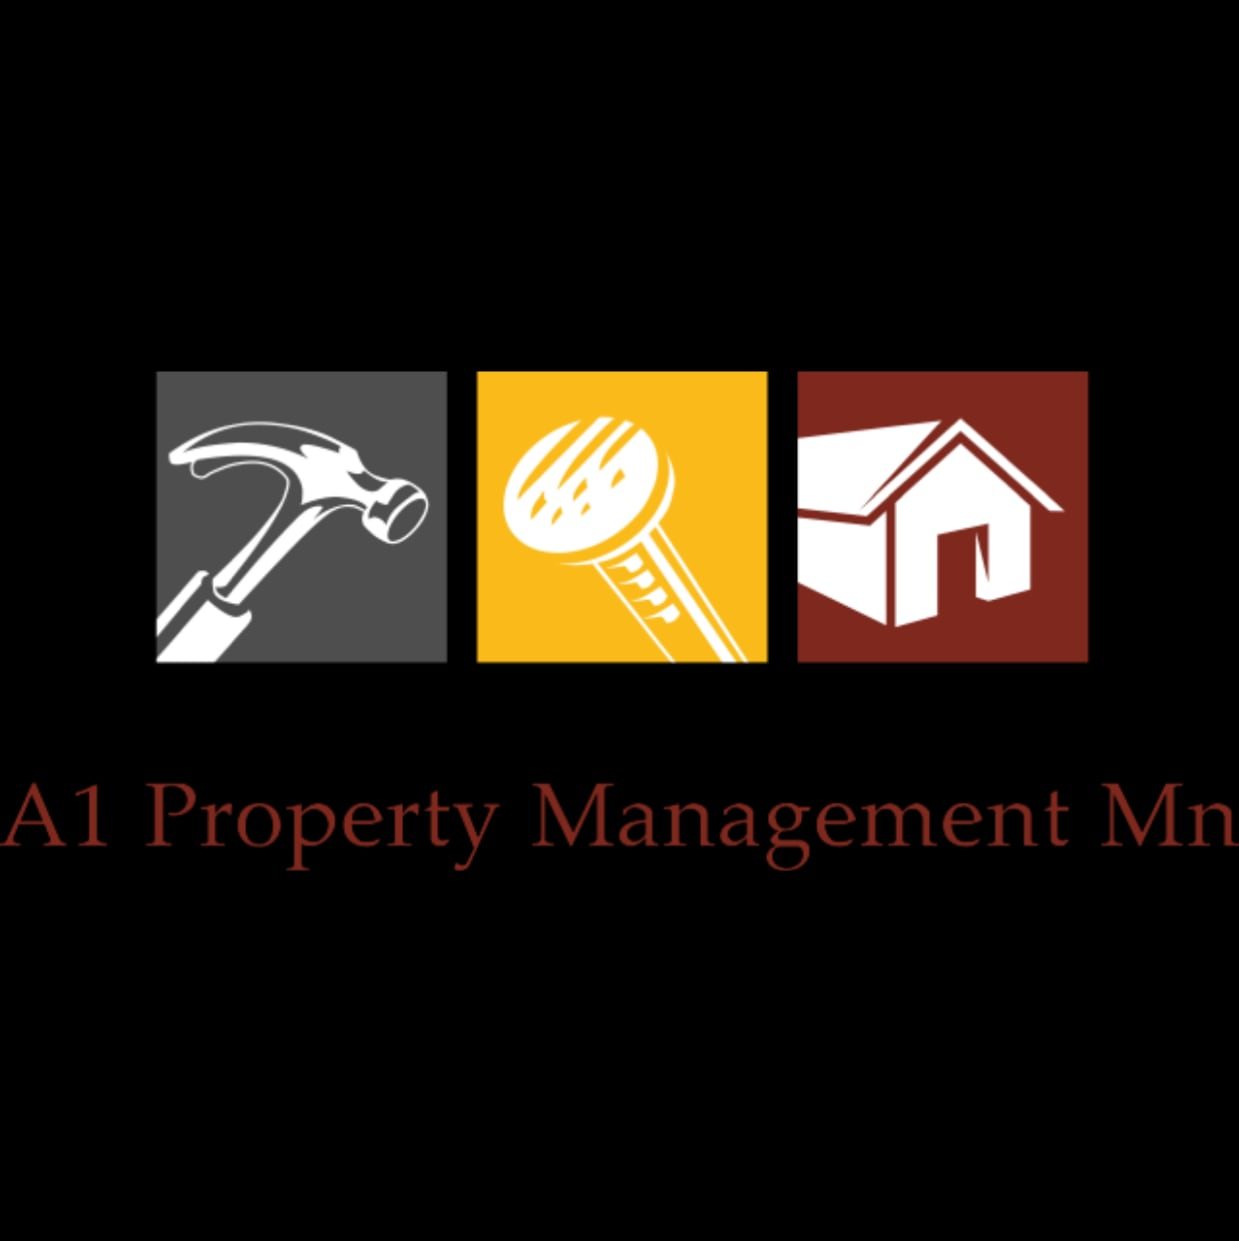 A1 Property Management Mn